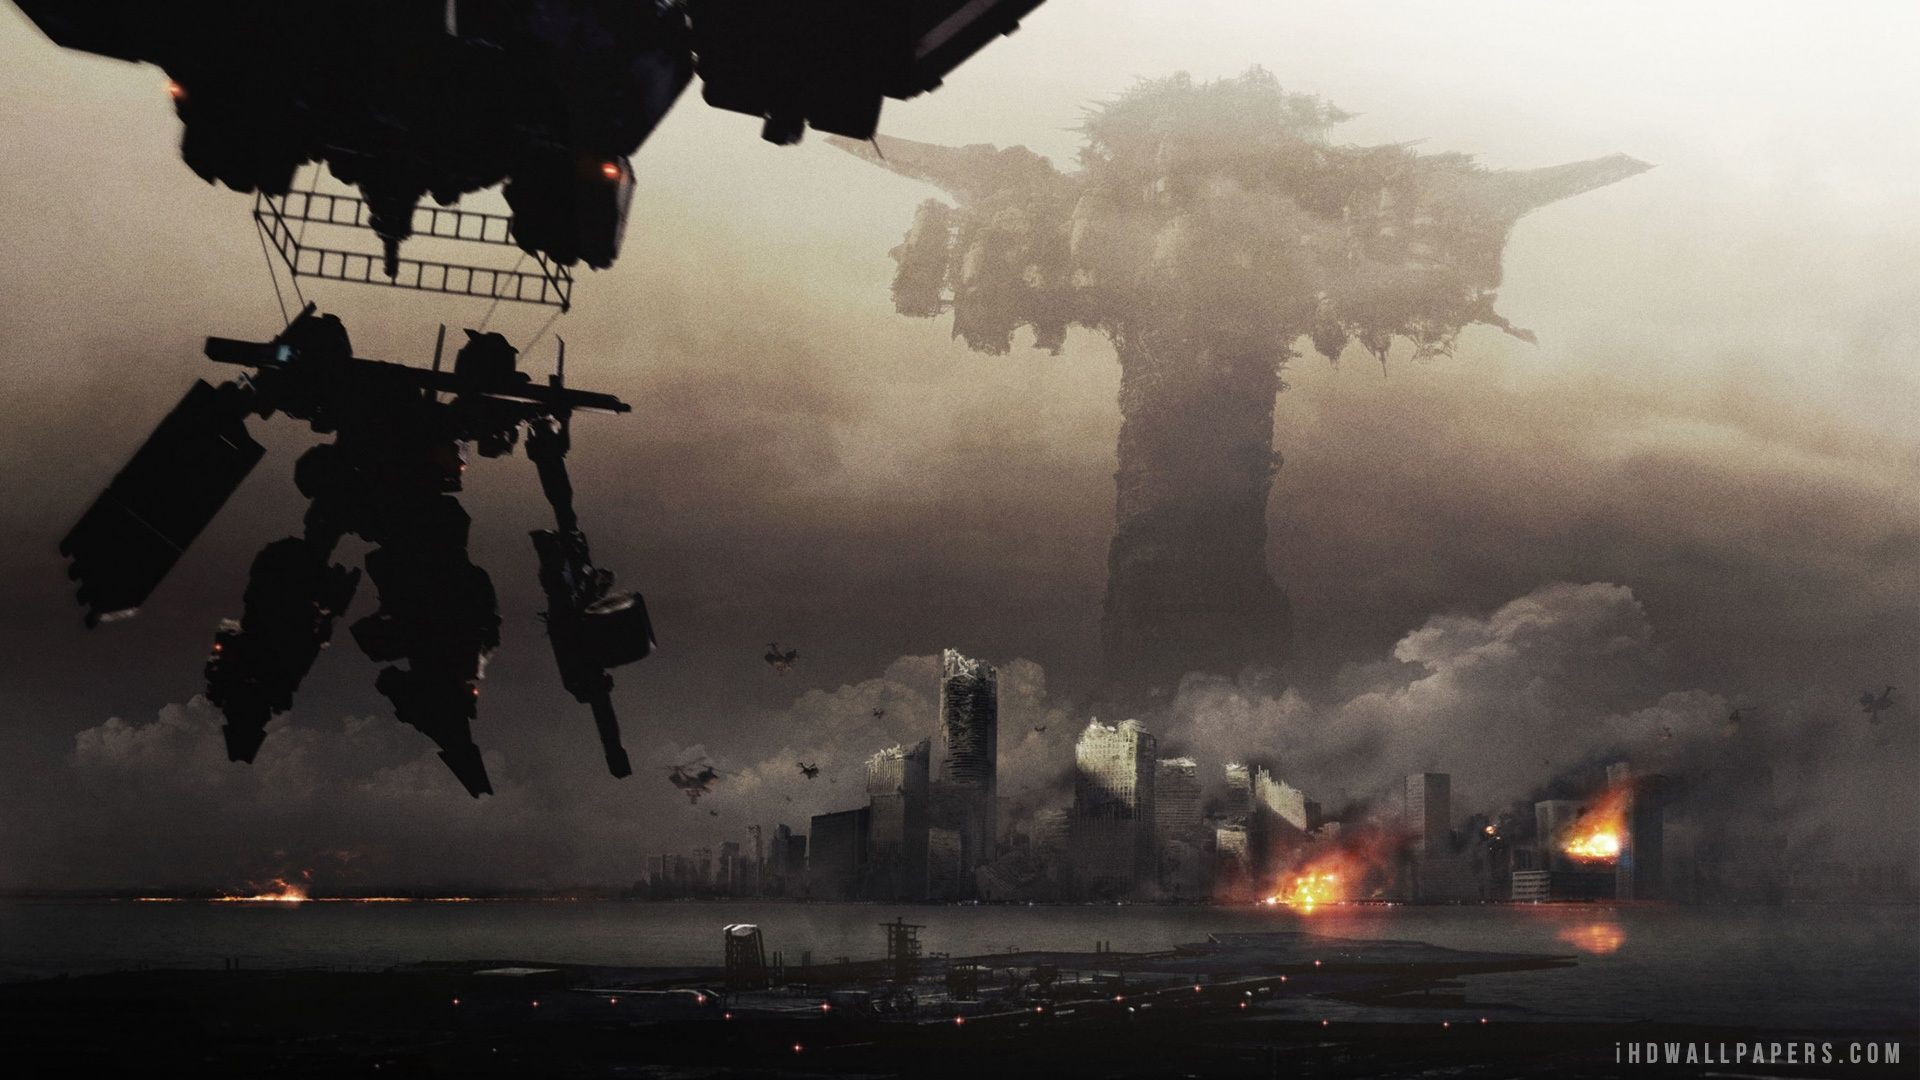 Armored Core Wallpaper Armored Core New Wallpaper Hd Scene Design